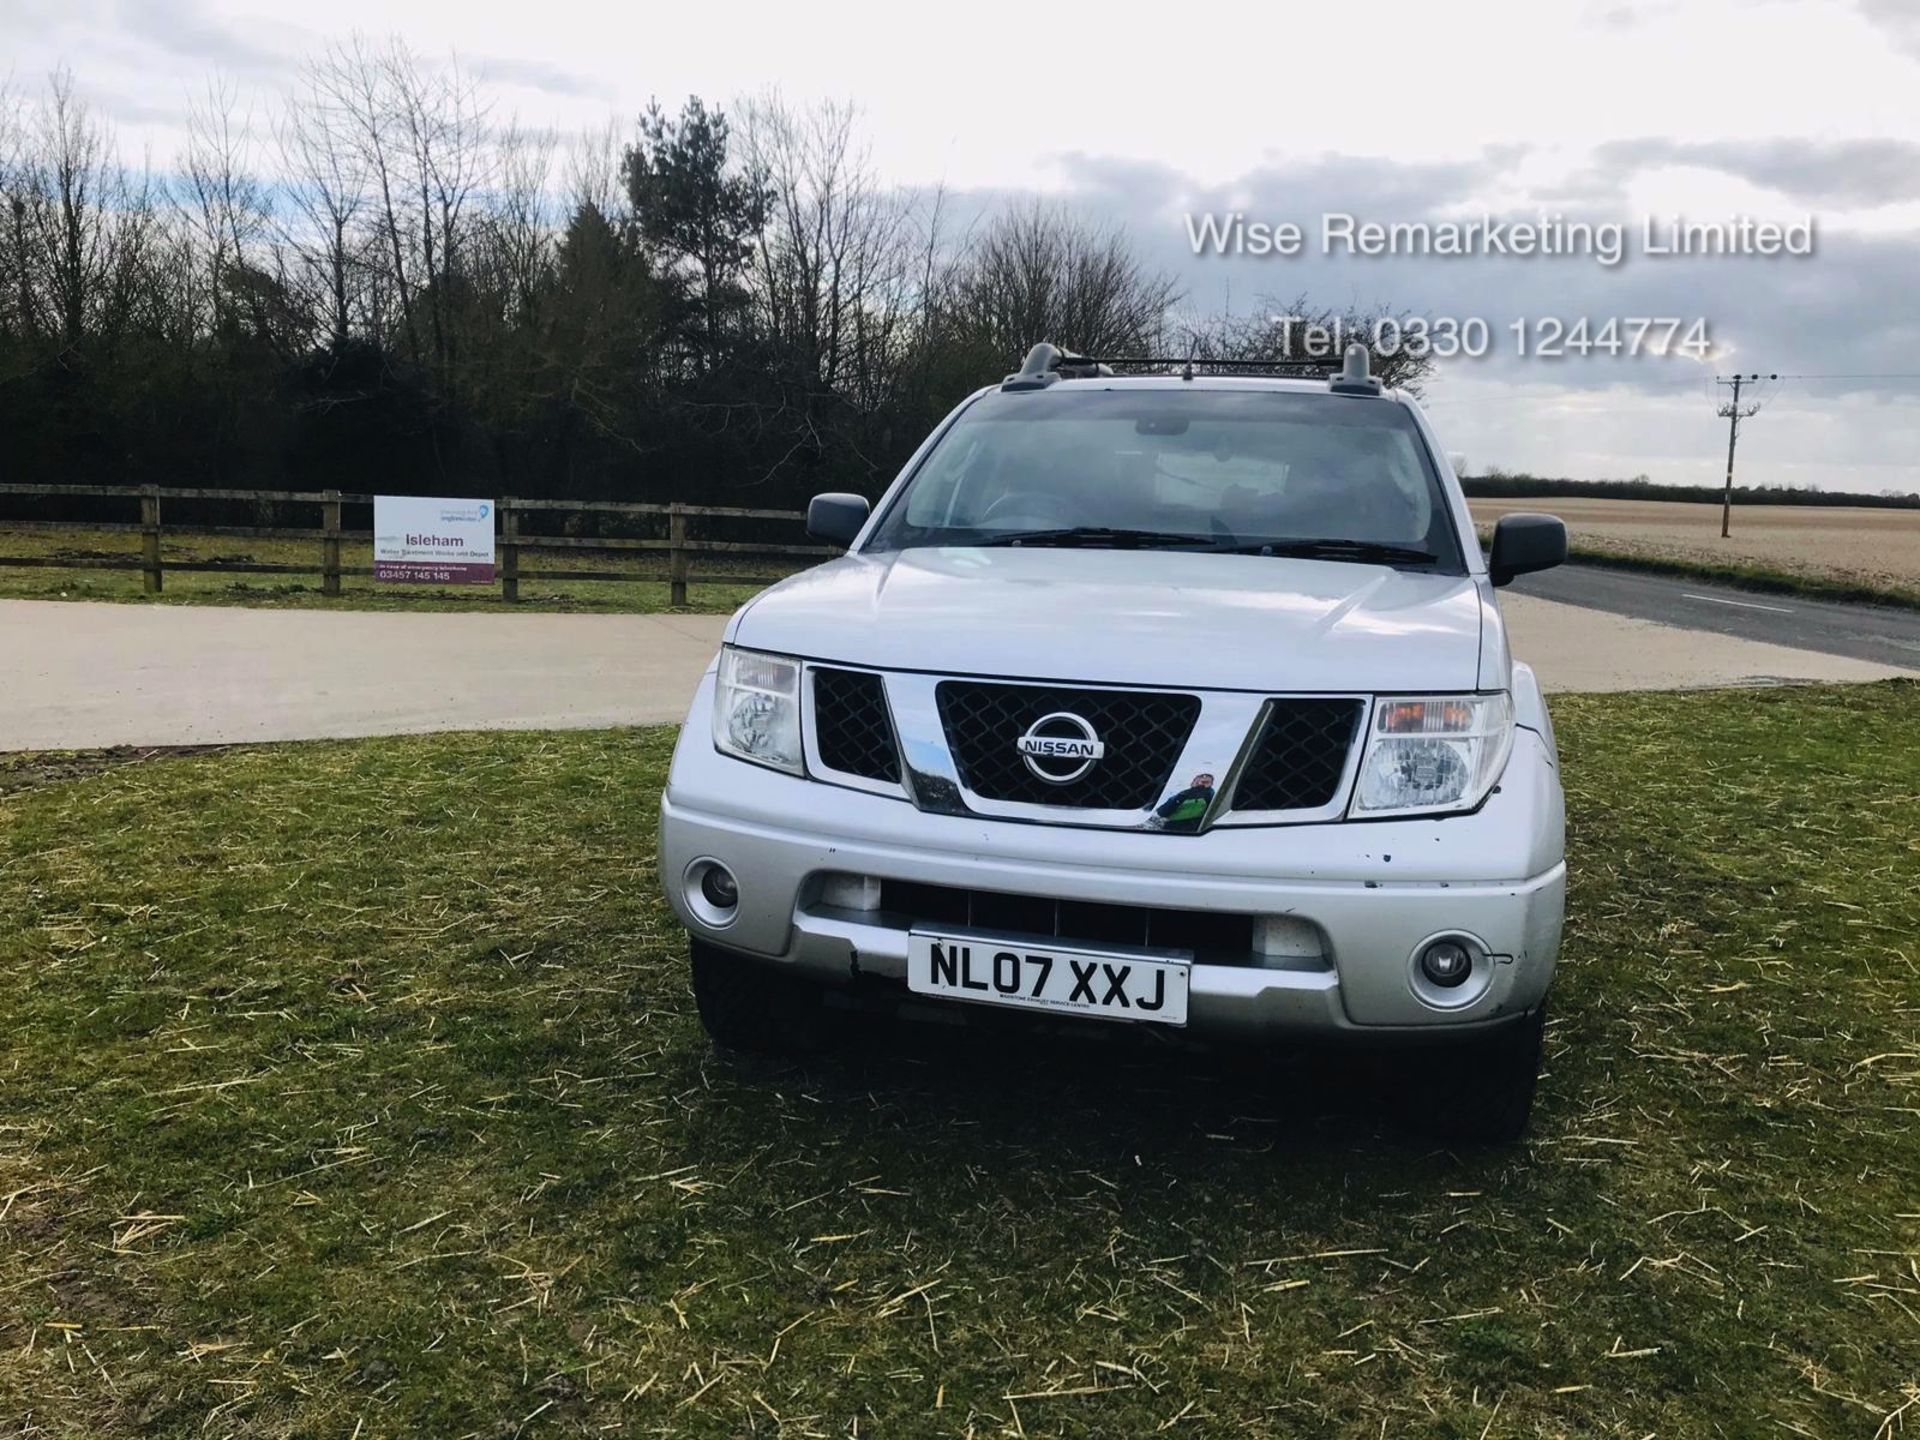 Lot 20 - Nissan Navara Aventura 2.5DCI Double Cab - 2007 07 Reg - 4x4 - SAVE 20% NO VAT